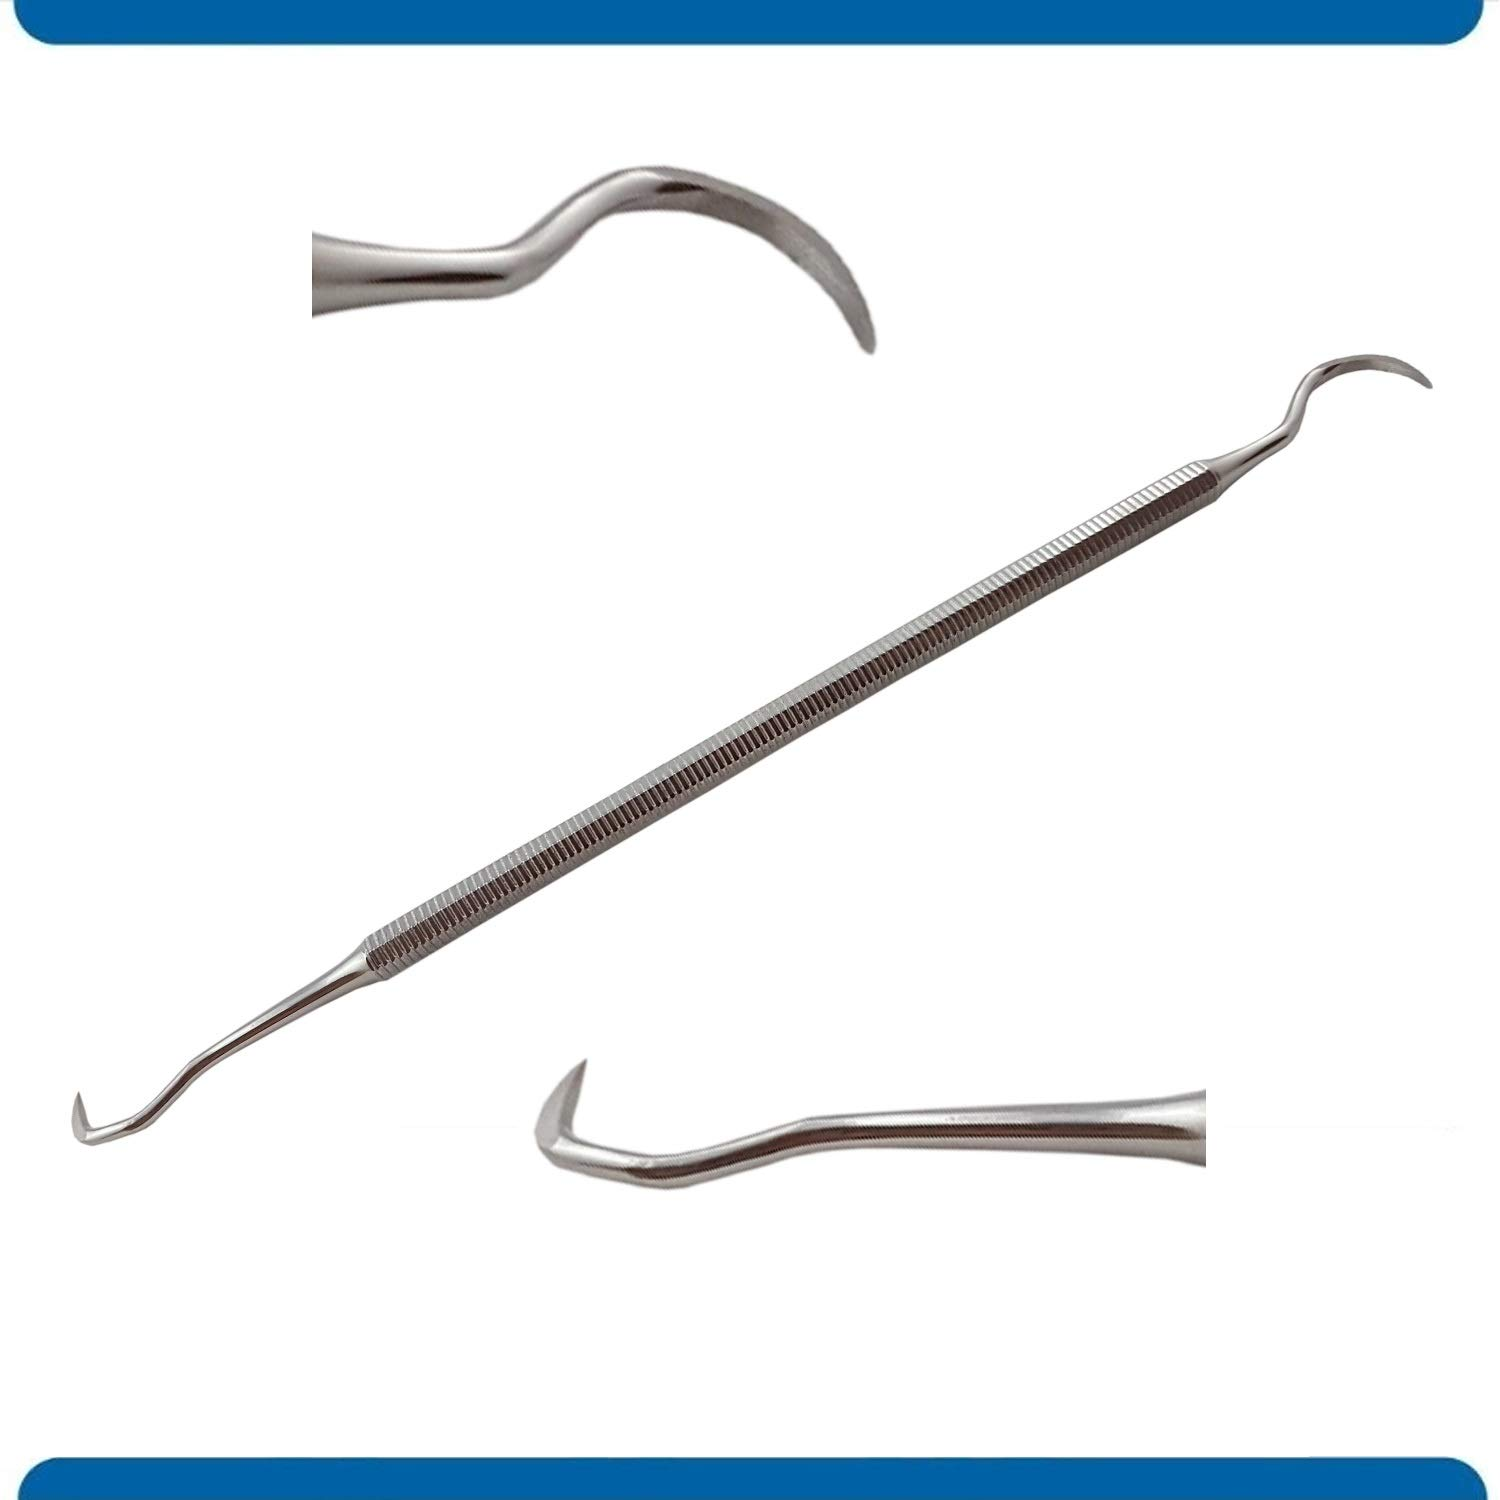 Towner/Jacquette Scalar, UI5 LS, Professional Quality Dental Scaling Instrument